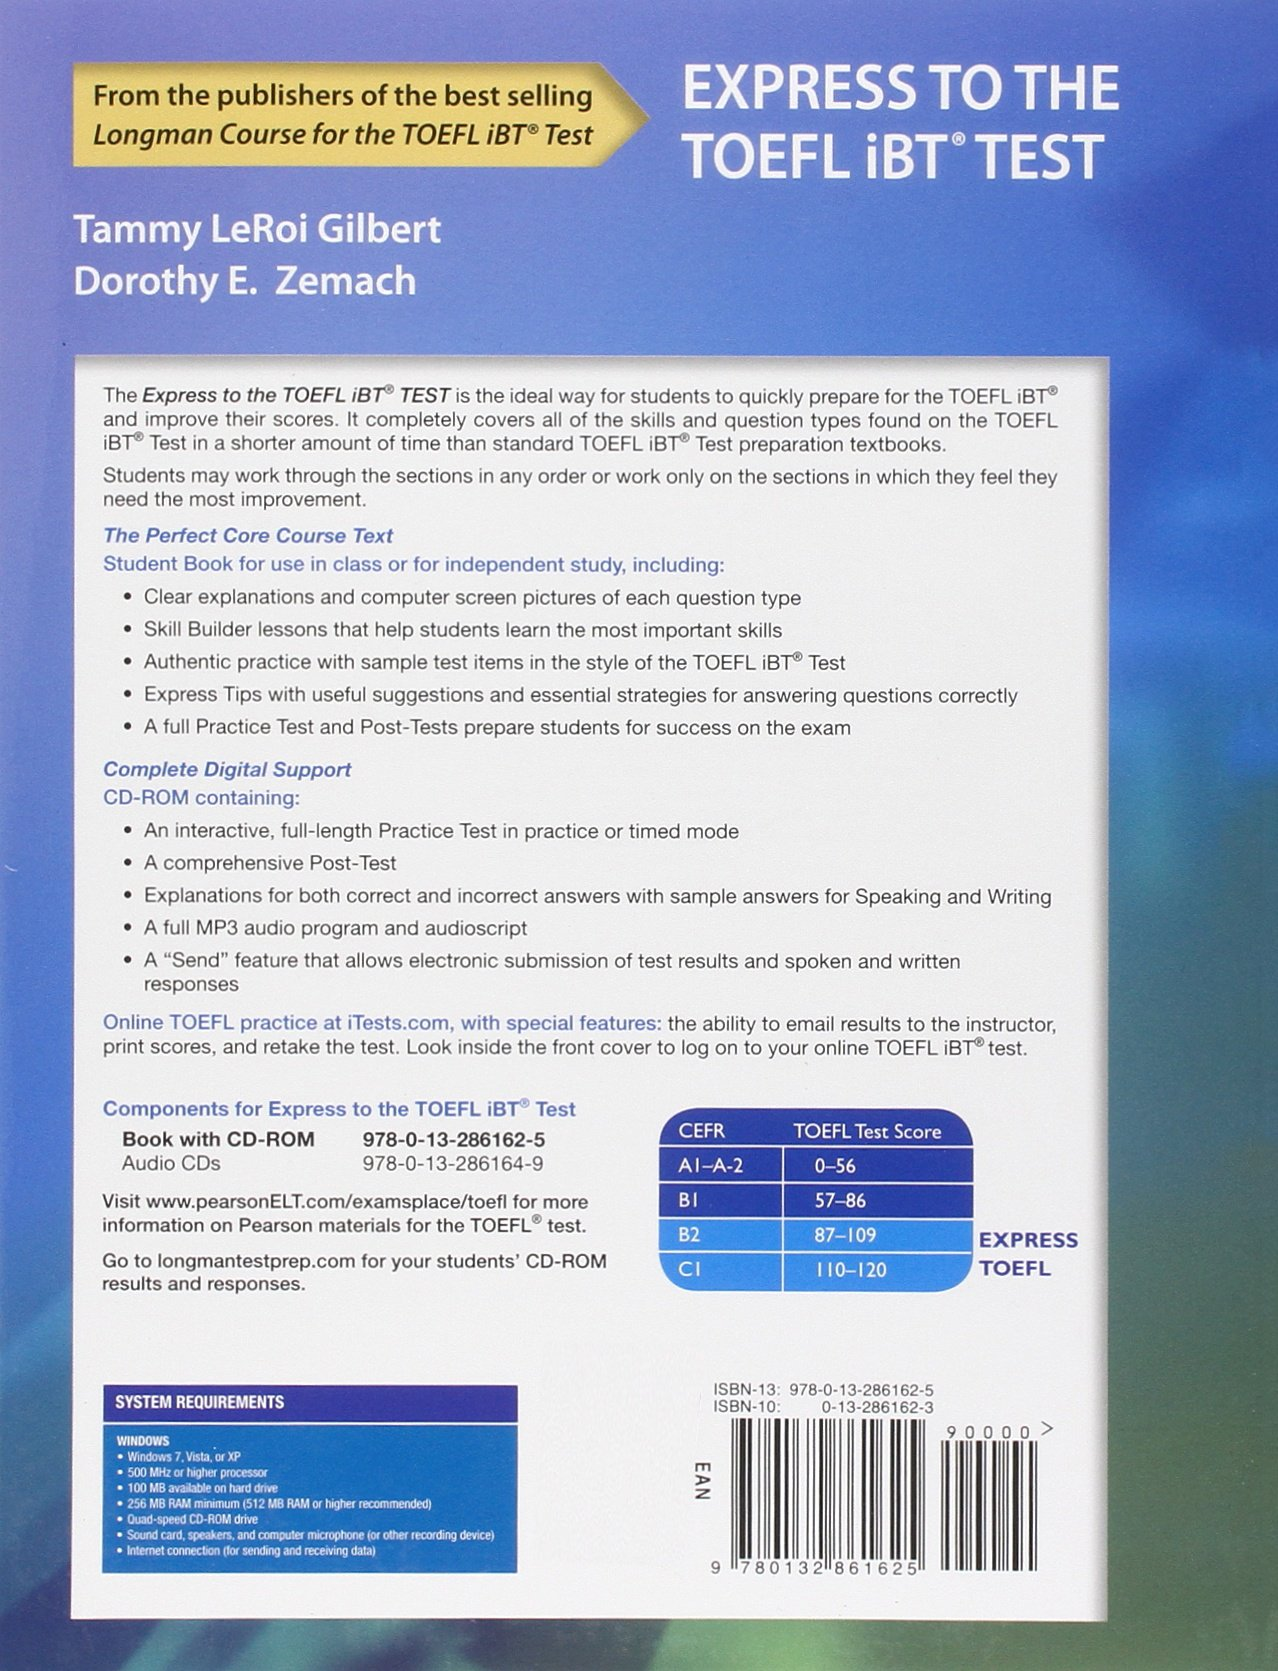 Express to the TOEFL iBT® Test with CD-ROM by Pearson Education ESL